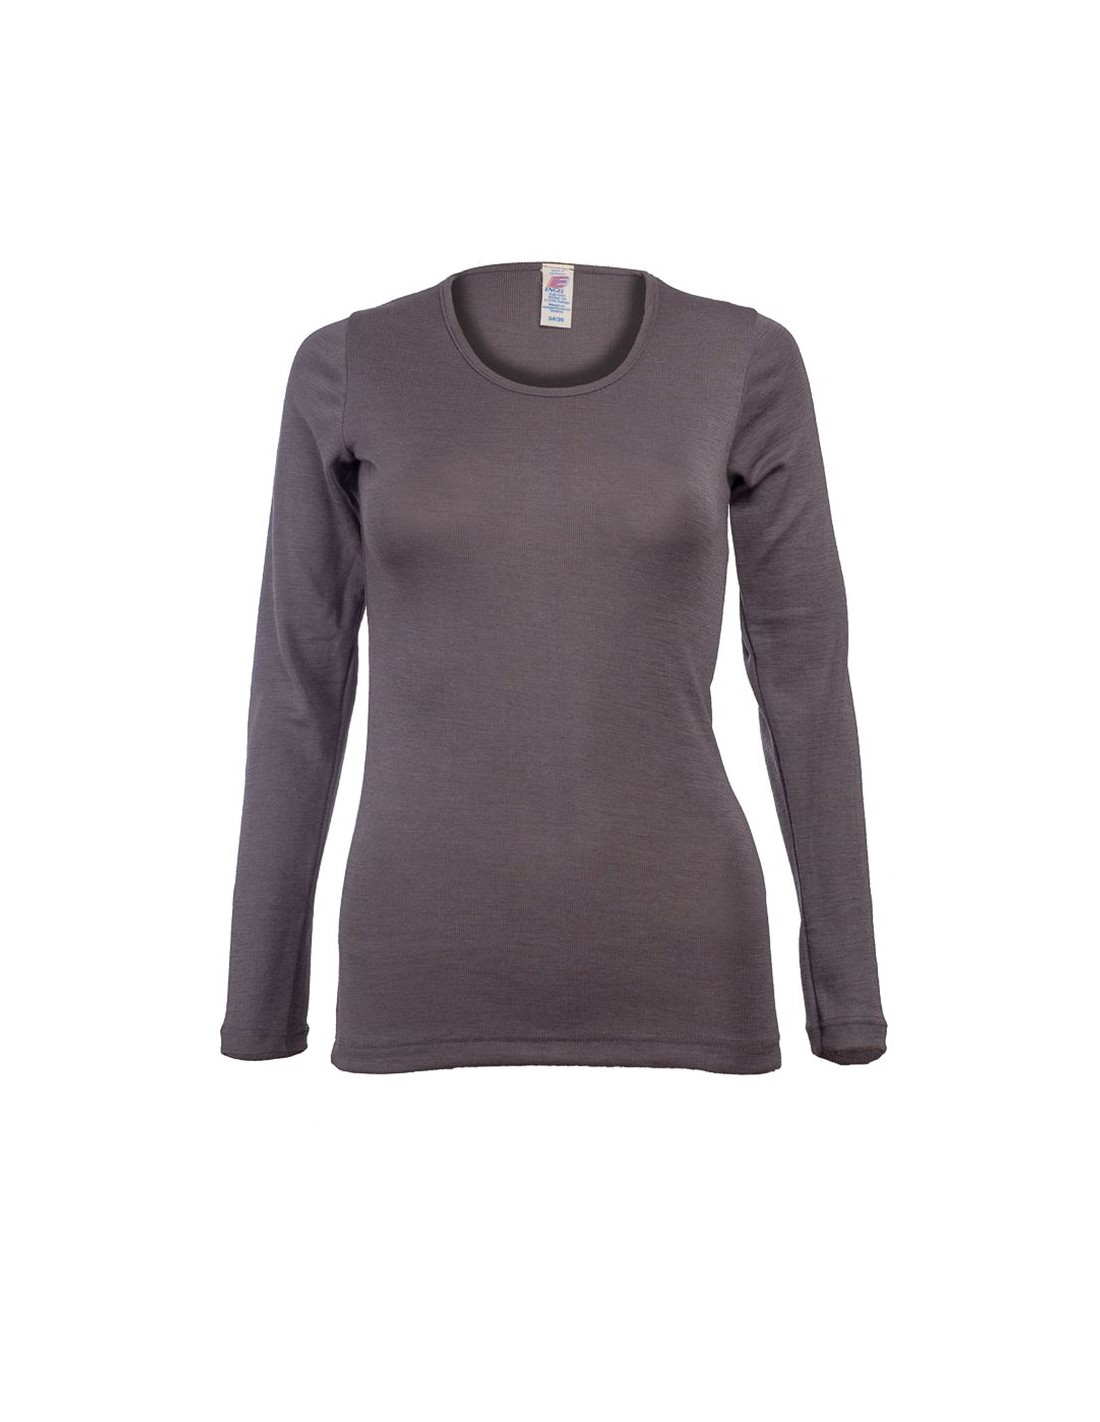 1ab28c4e240 Longsleeve in taupe (wol-zijde)